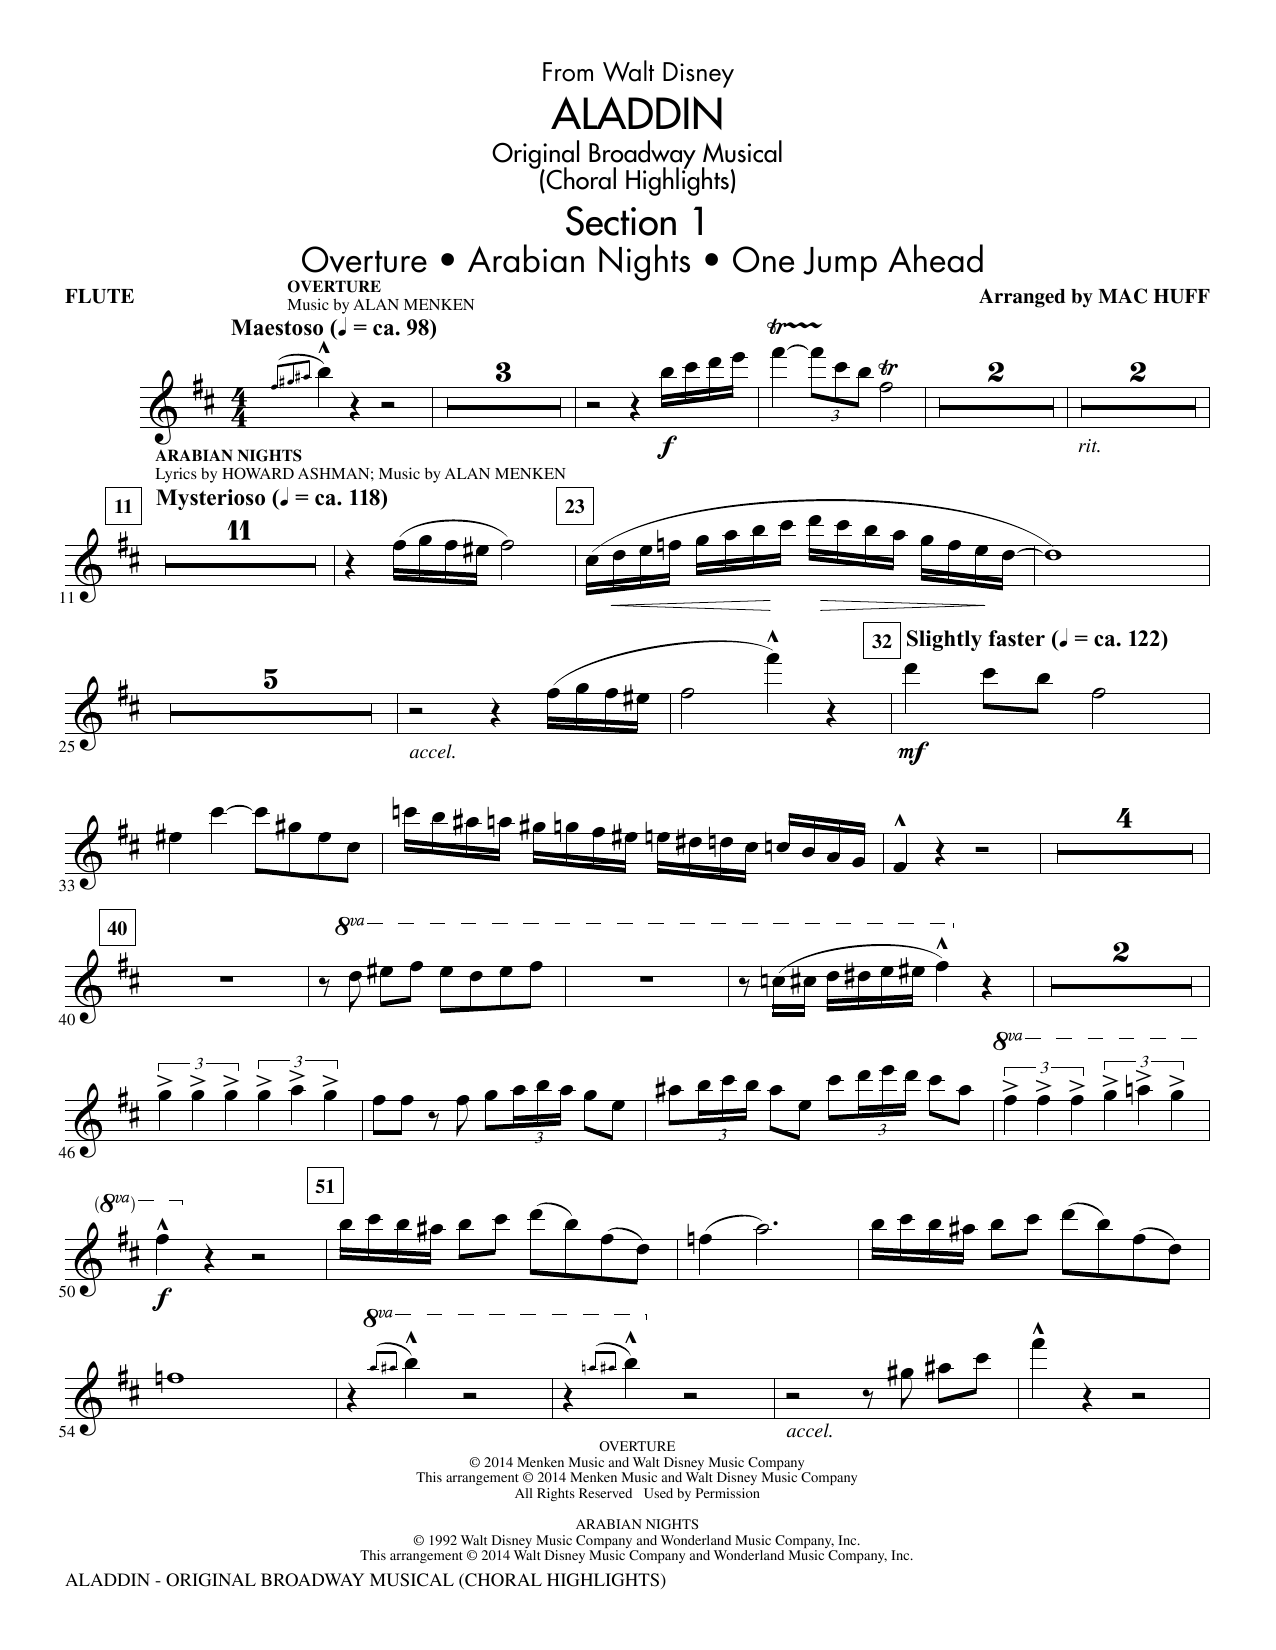 aladdin original broadway musical flute sheet music to download